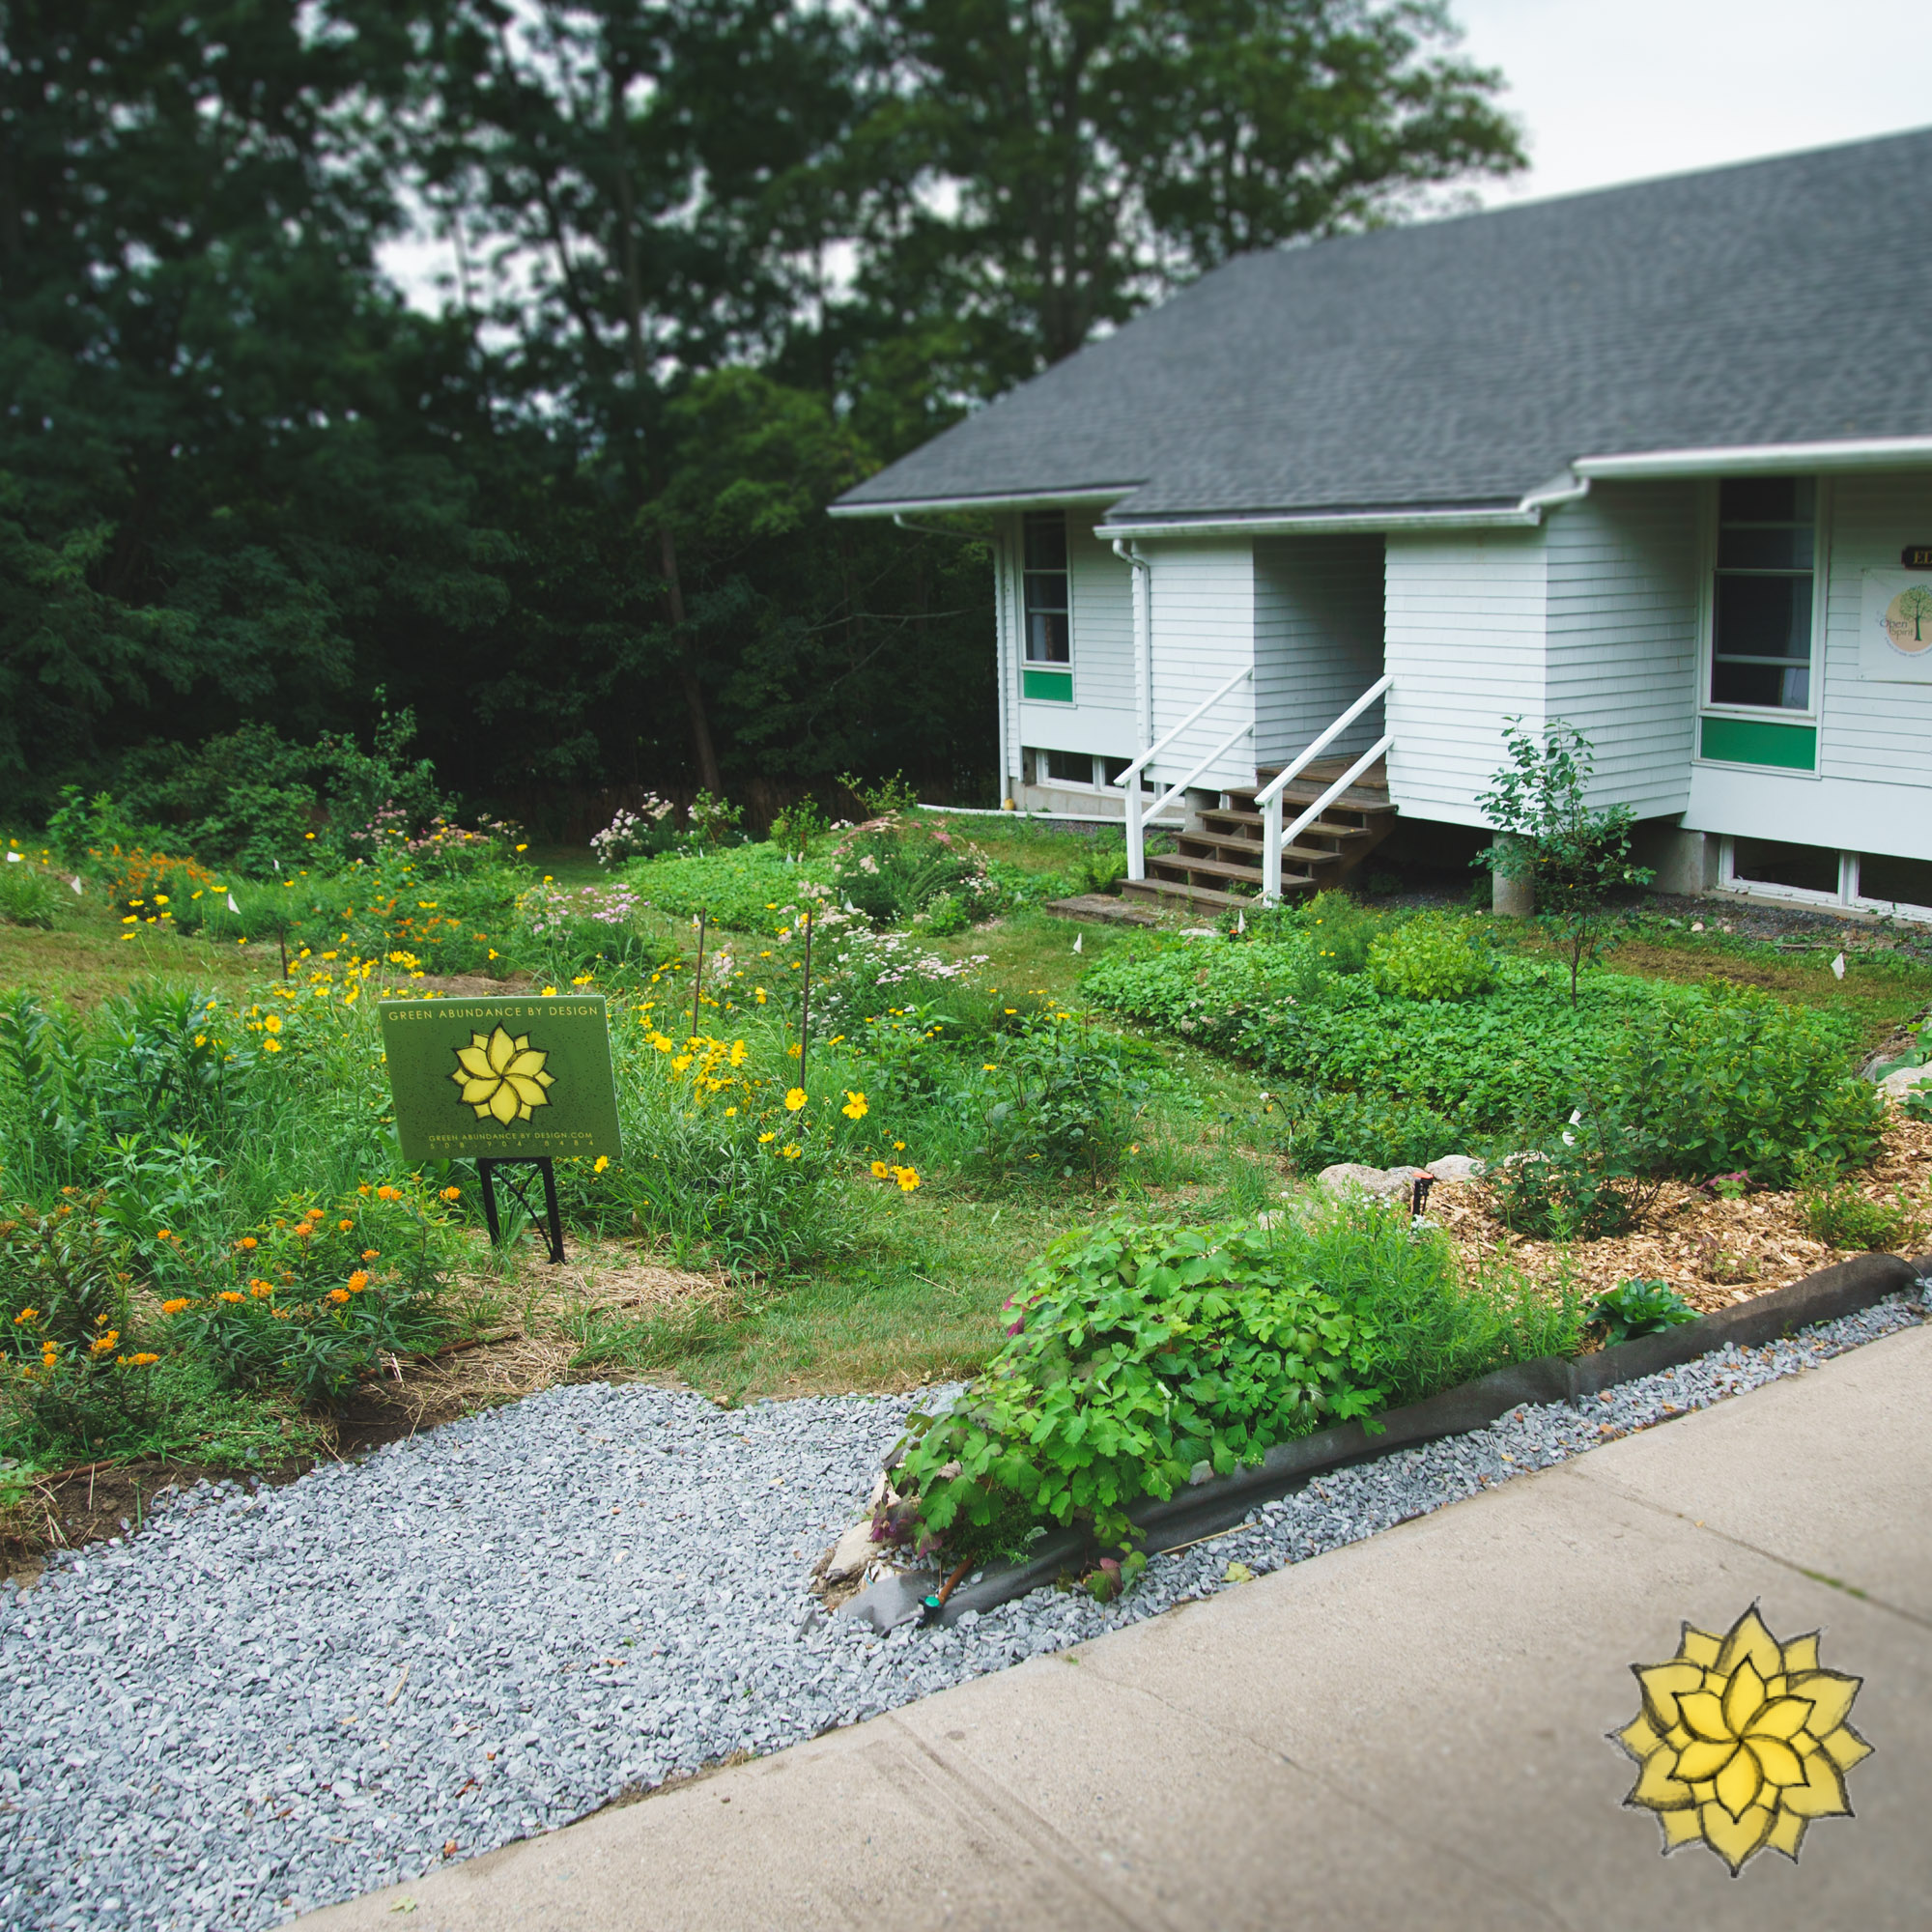 Rain Gardens - We love making gardens that harvest the bounty of nature's abundance. Rain gardens are an important part in our landscapes as they help store and clean nature's most precious resource.